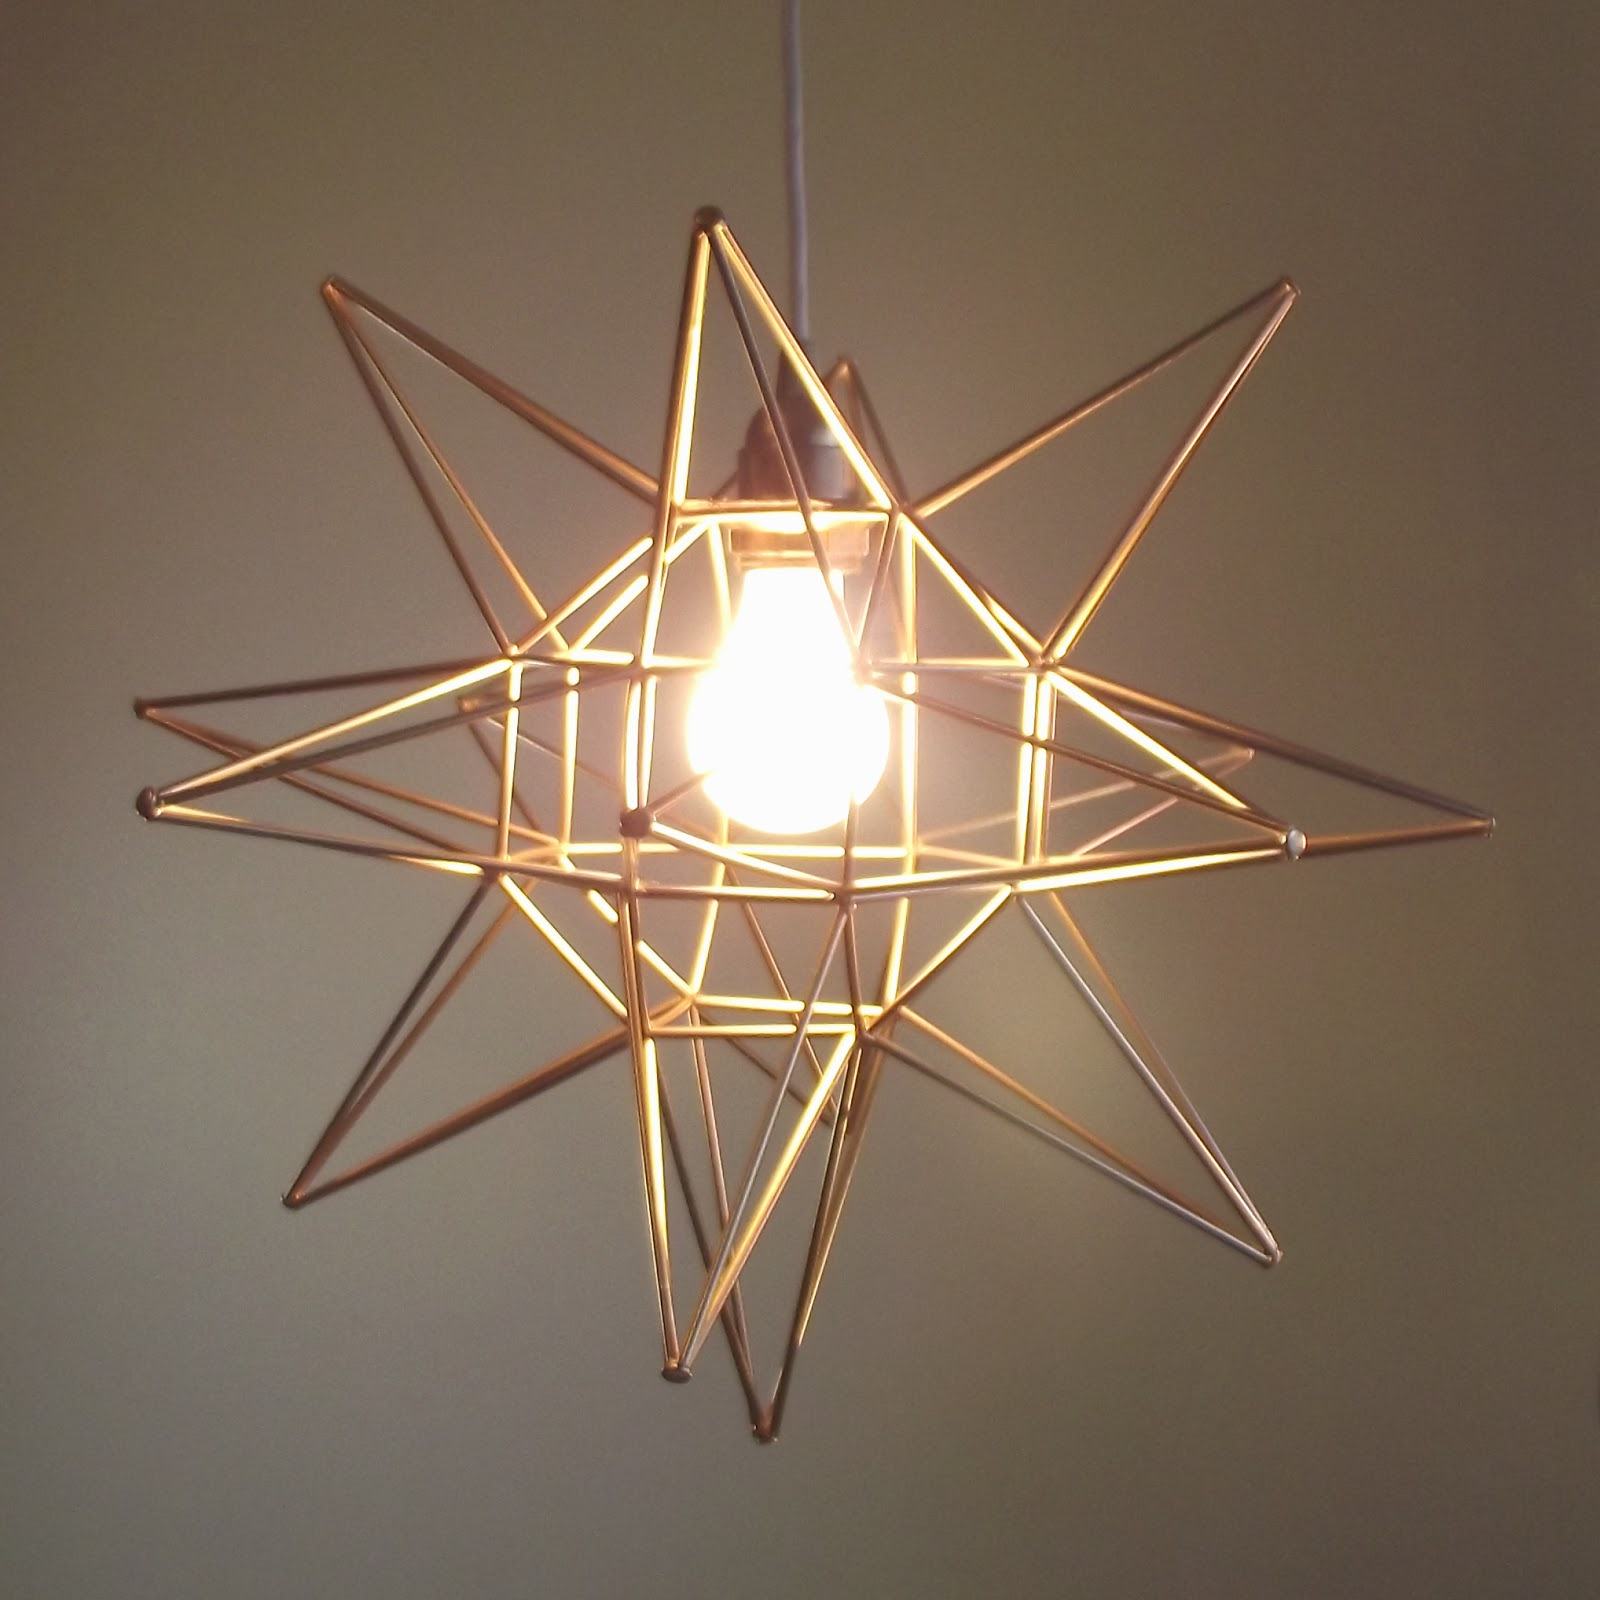 Moravian star pendant light fixture made of metal wire with bulb for home  decorating ideasMoravian Star Pendant Light Fixture That Will Brighten Your Home  . Moravian Star Pendant Light Fixture. Home Design Ideas